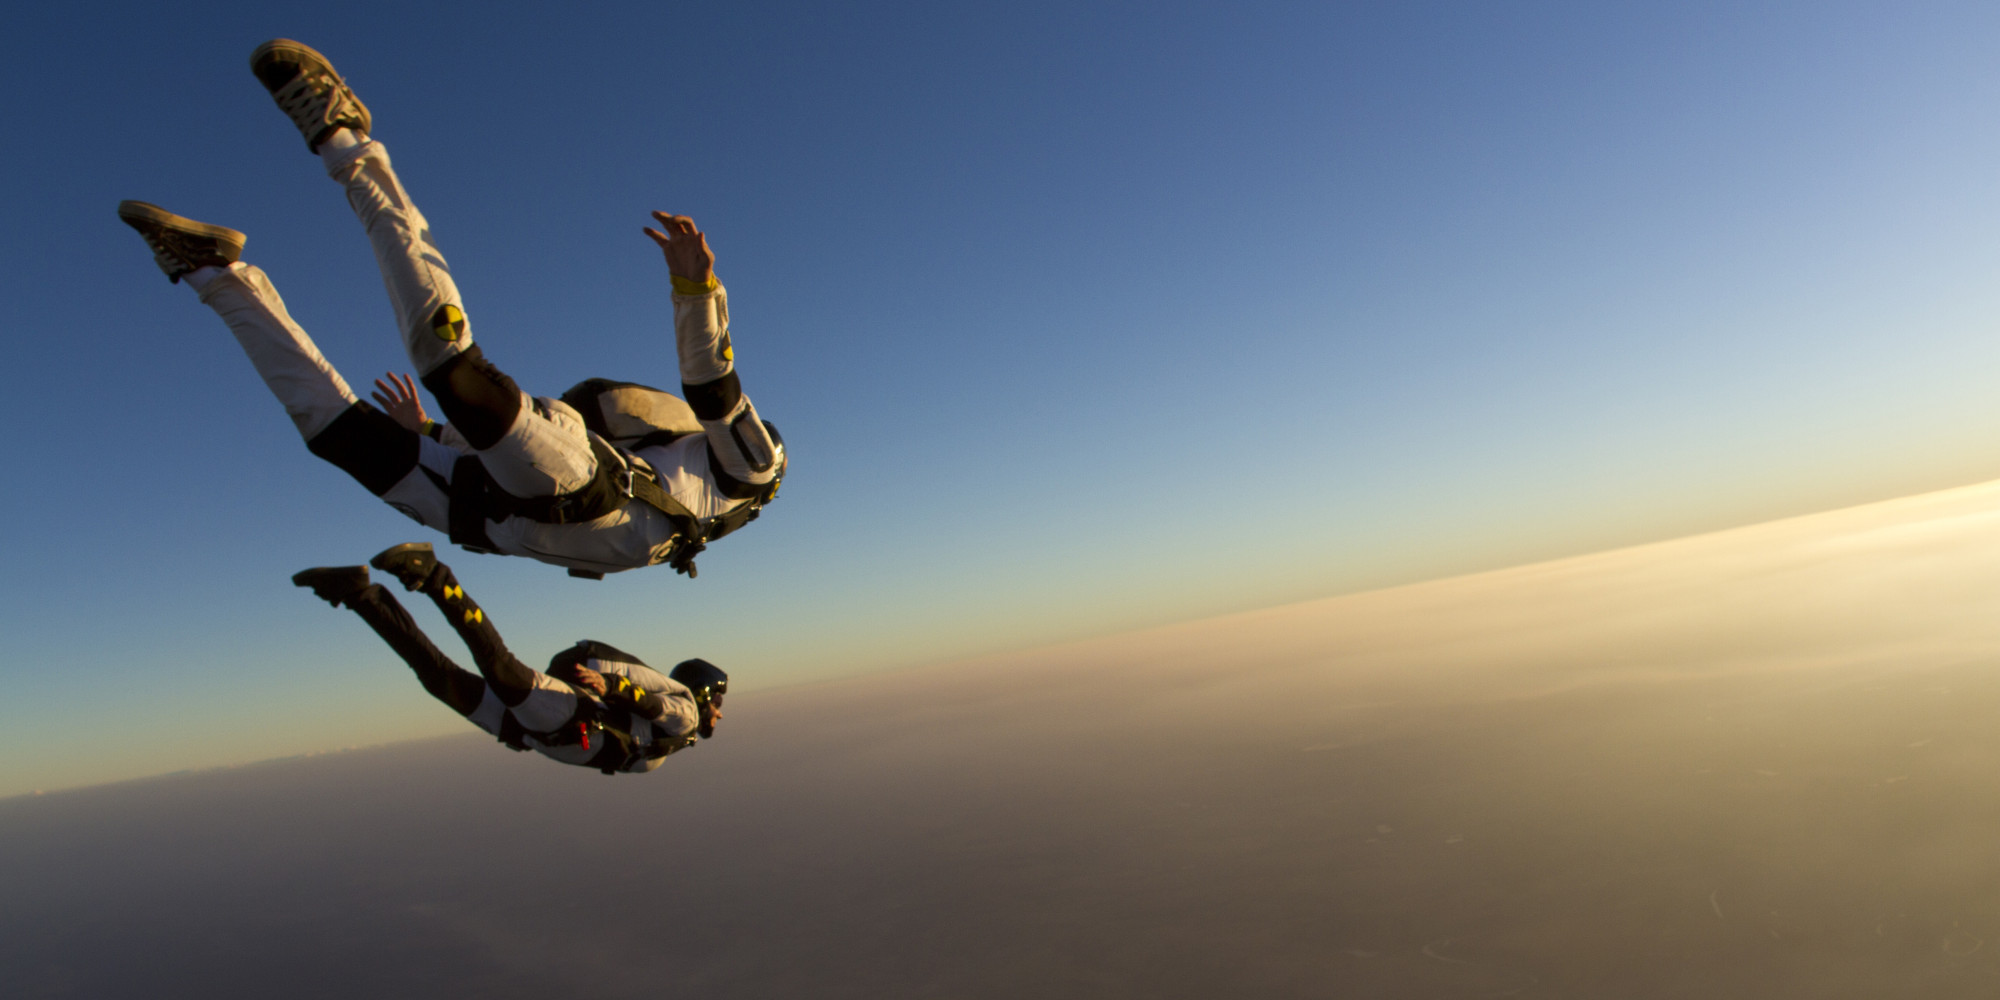 Volleyball Wallpaper Iphone Limitless Pursuits The Best Place To Skydive On Every